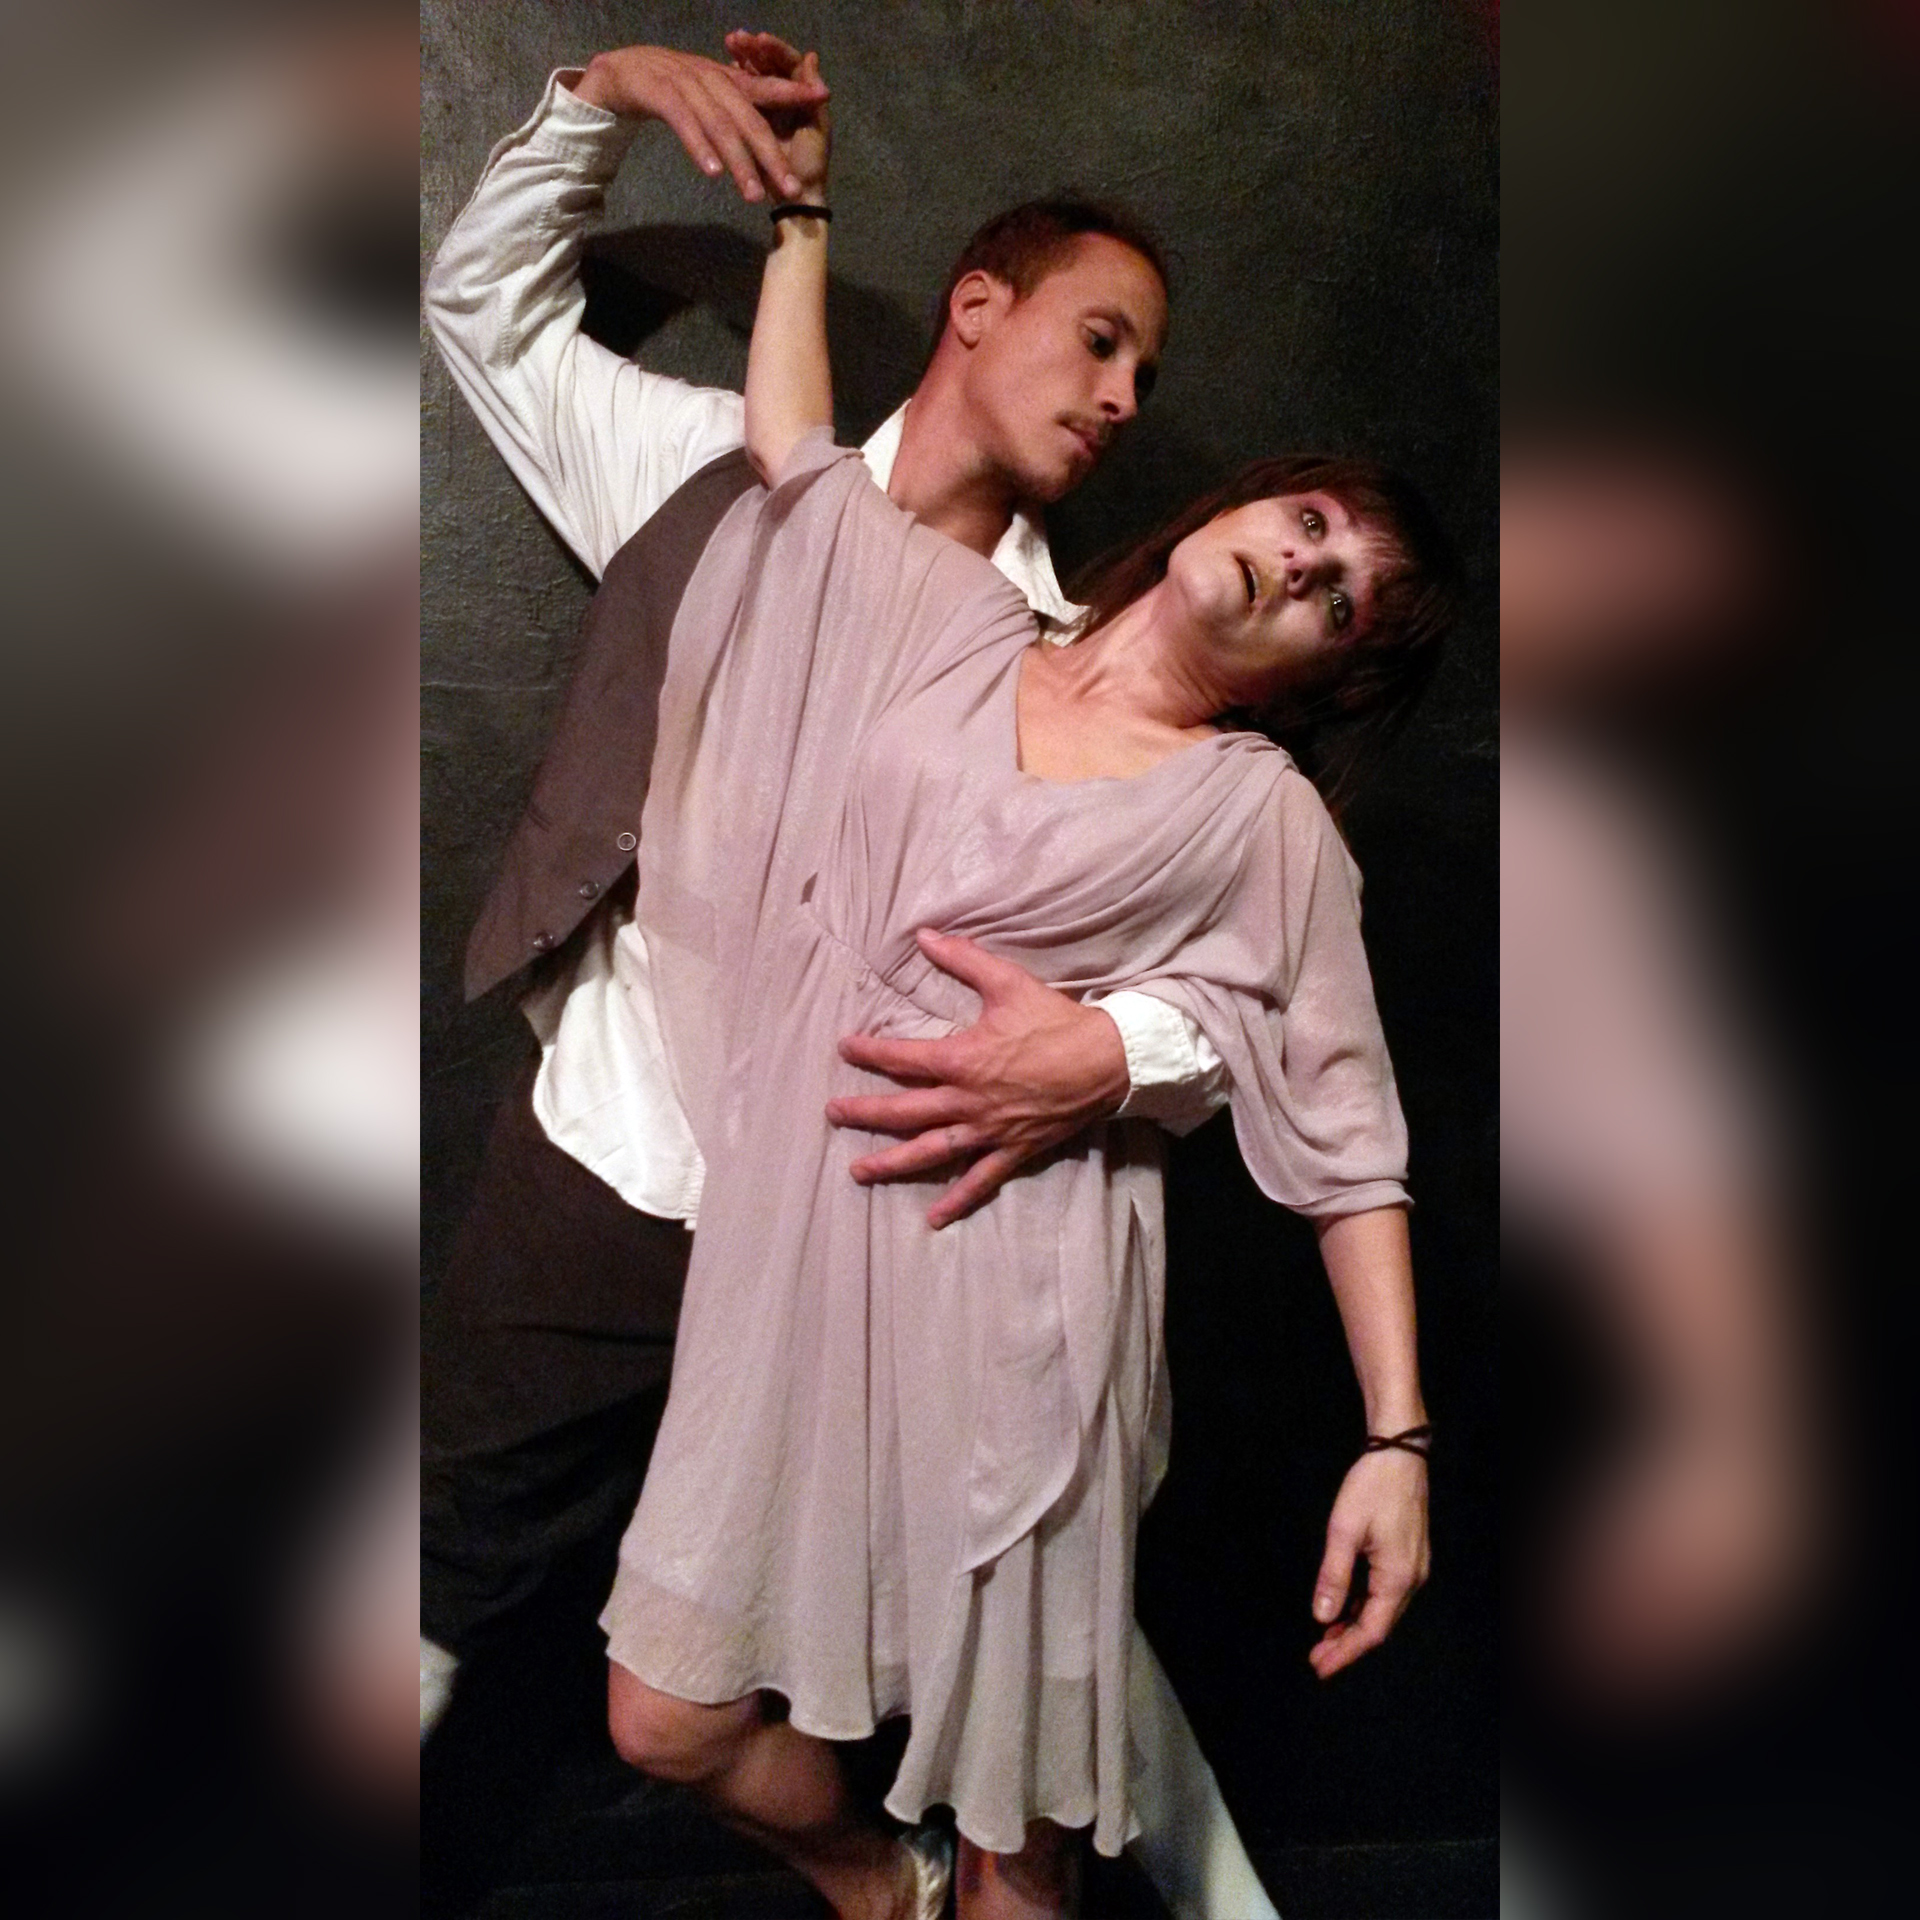 Juan Carlos Gough and Elif Savas in a haunting dance in  Blood Alley 3 . (Image courtesy of Zombie Joe's Underground Theatre.)